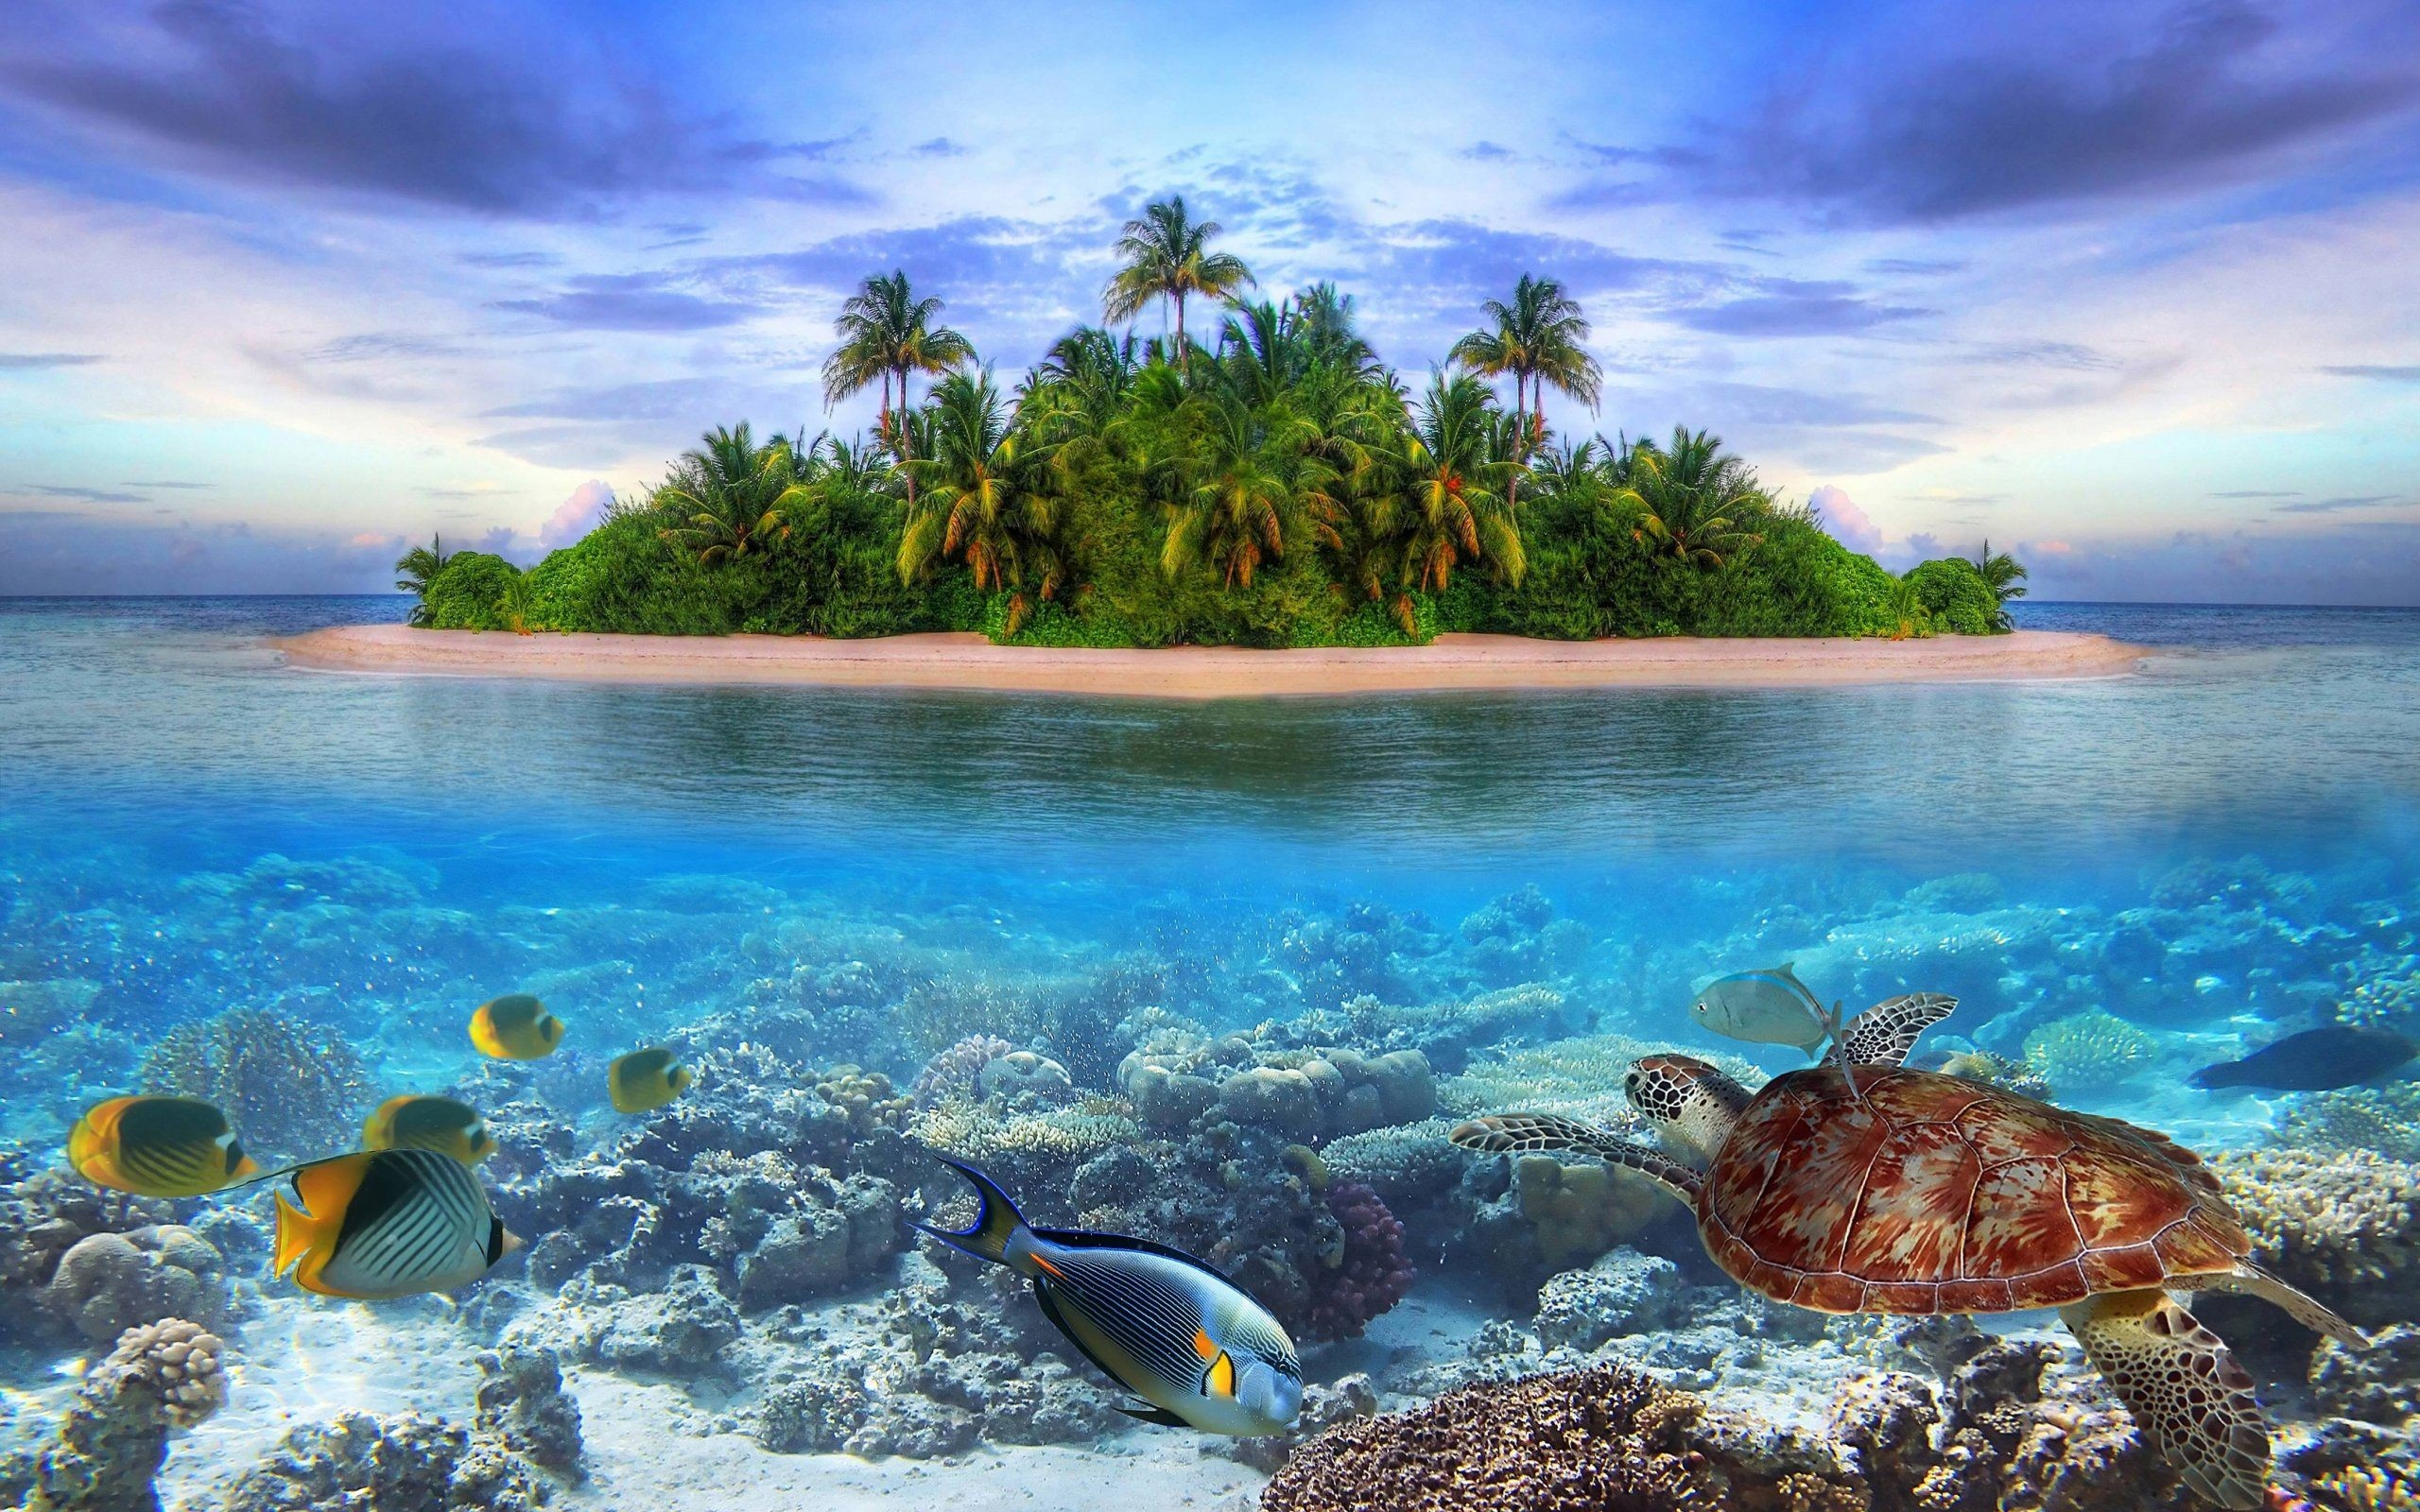 2560x1600 Marine Life Of Tropical Island Wallpaper